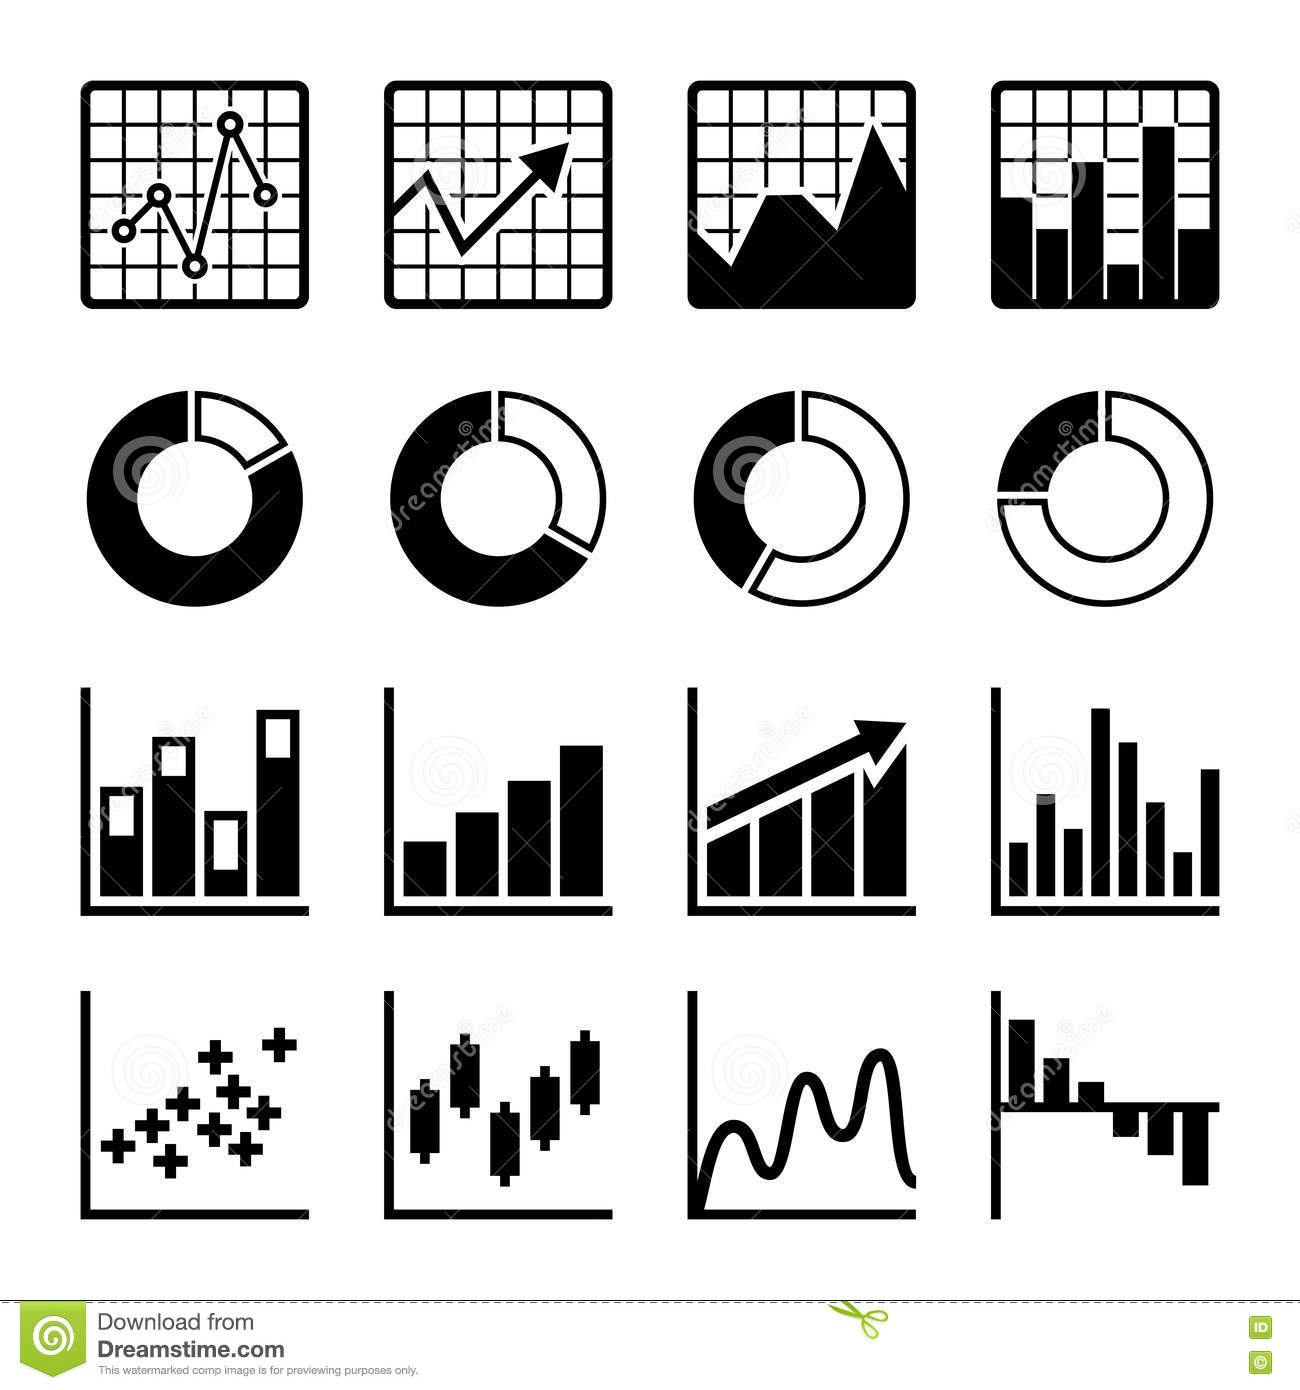 Business Infographic Icons Royalty Free Stock Image - Image: 35221156